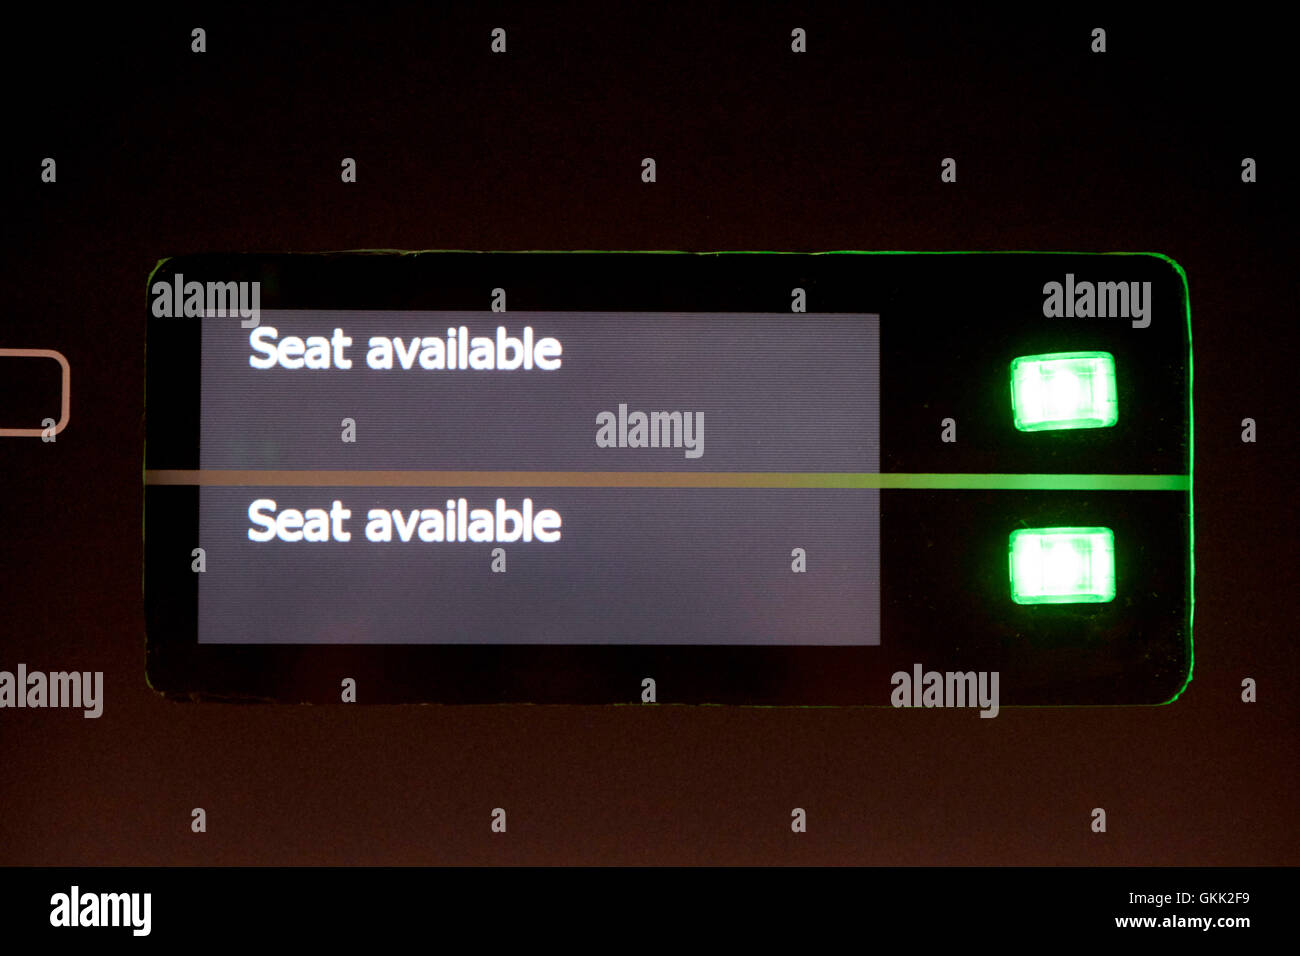 seat available signs on overhead seat reservation screens on a train - Stock Image